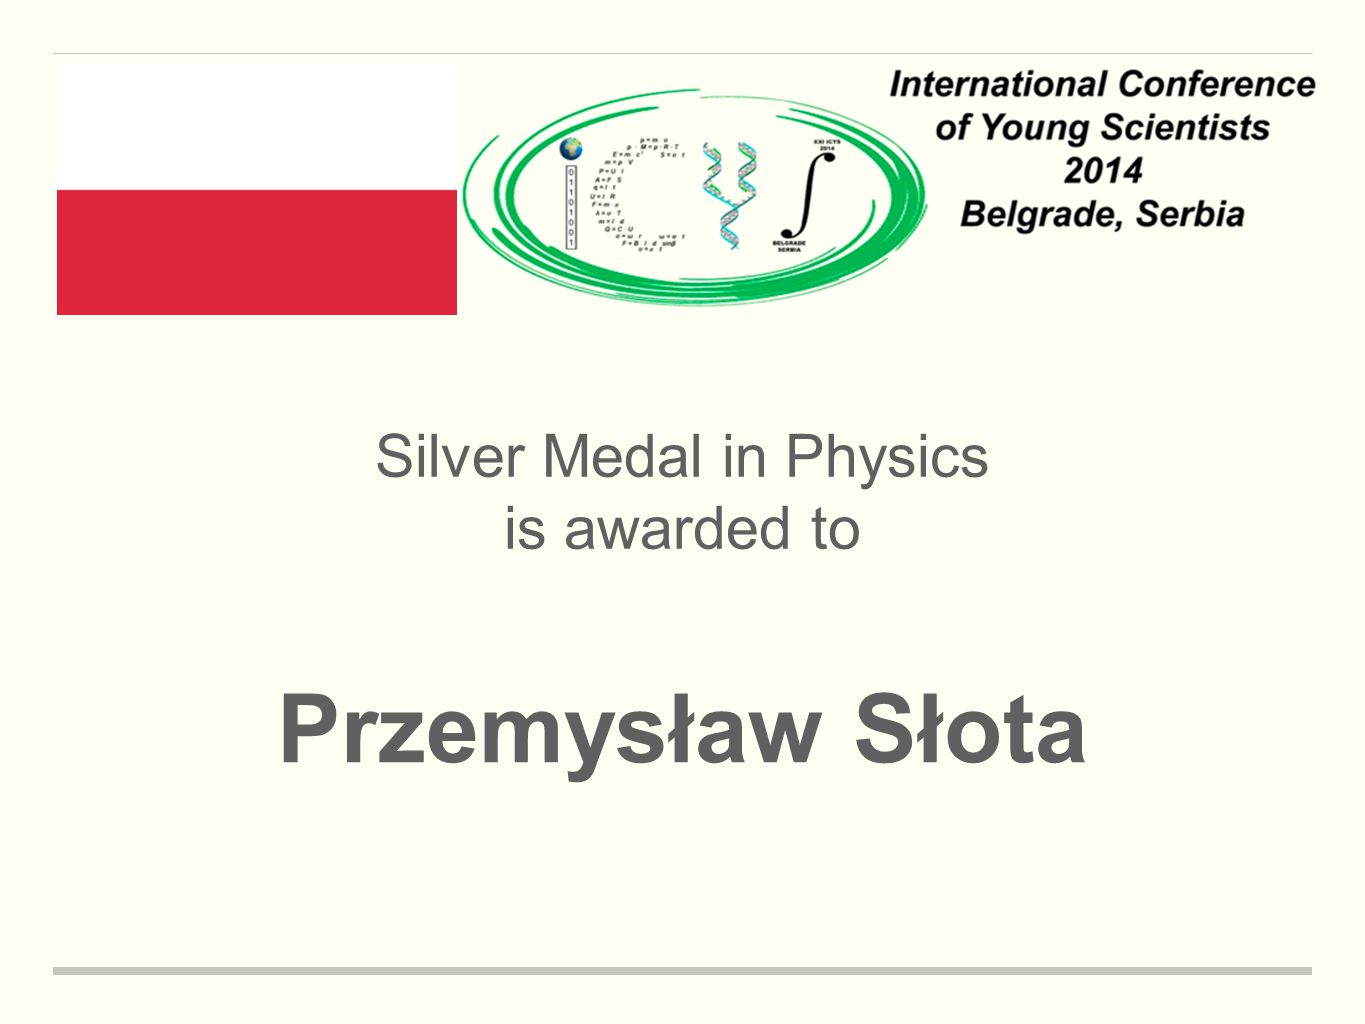 Silver Medal in Physics is awarded to Przemysław Słota